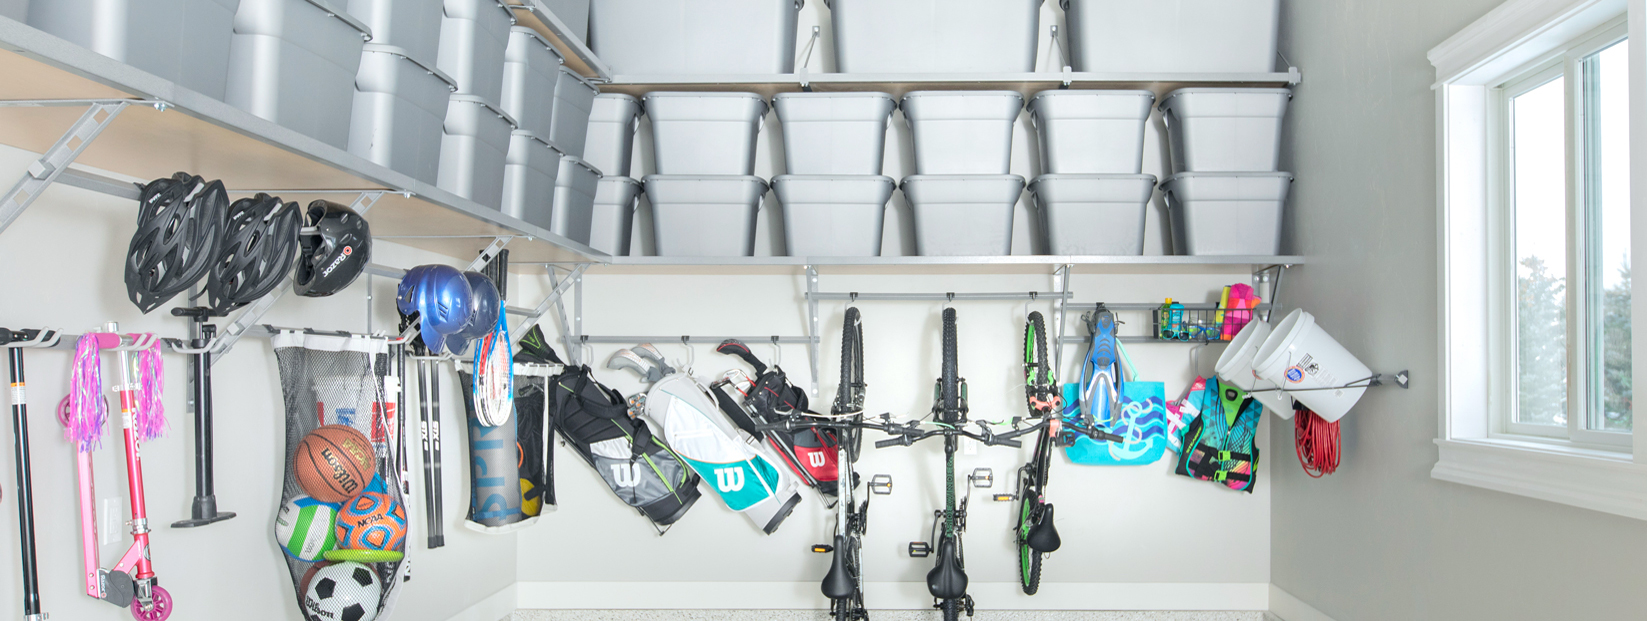 Garage Shelving Philadelphia